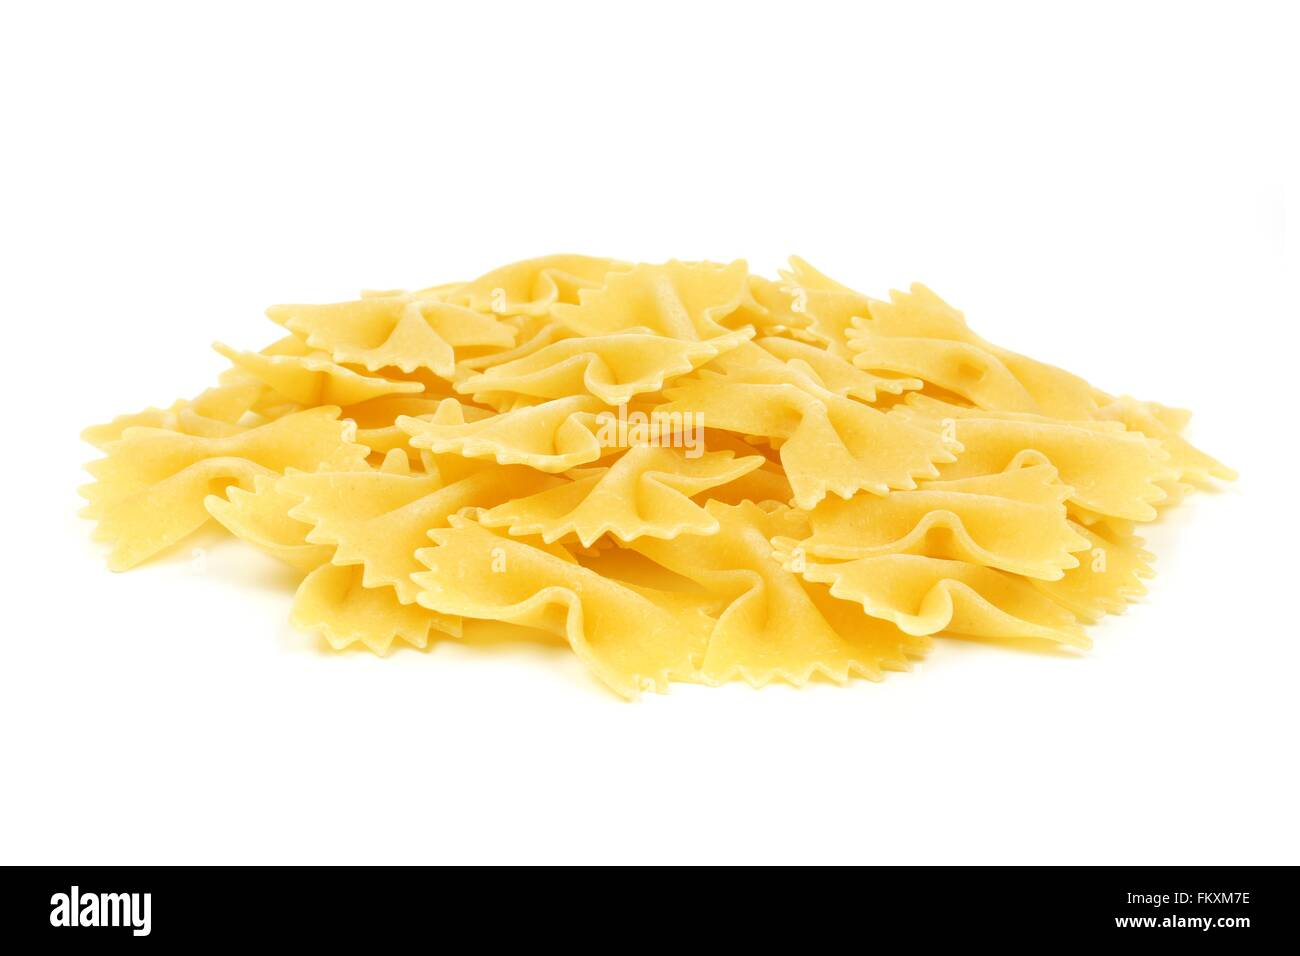 Pile of uncooked dry bow tie pasta isolated on a white background - Stock Image